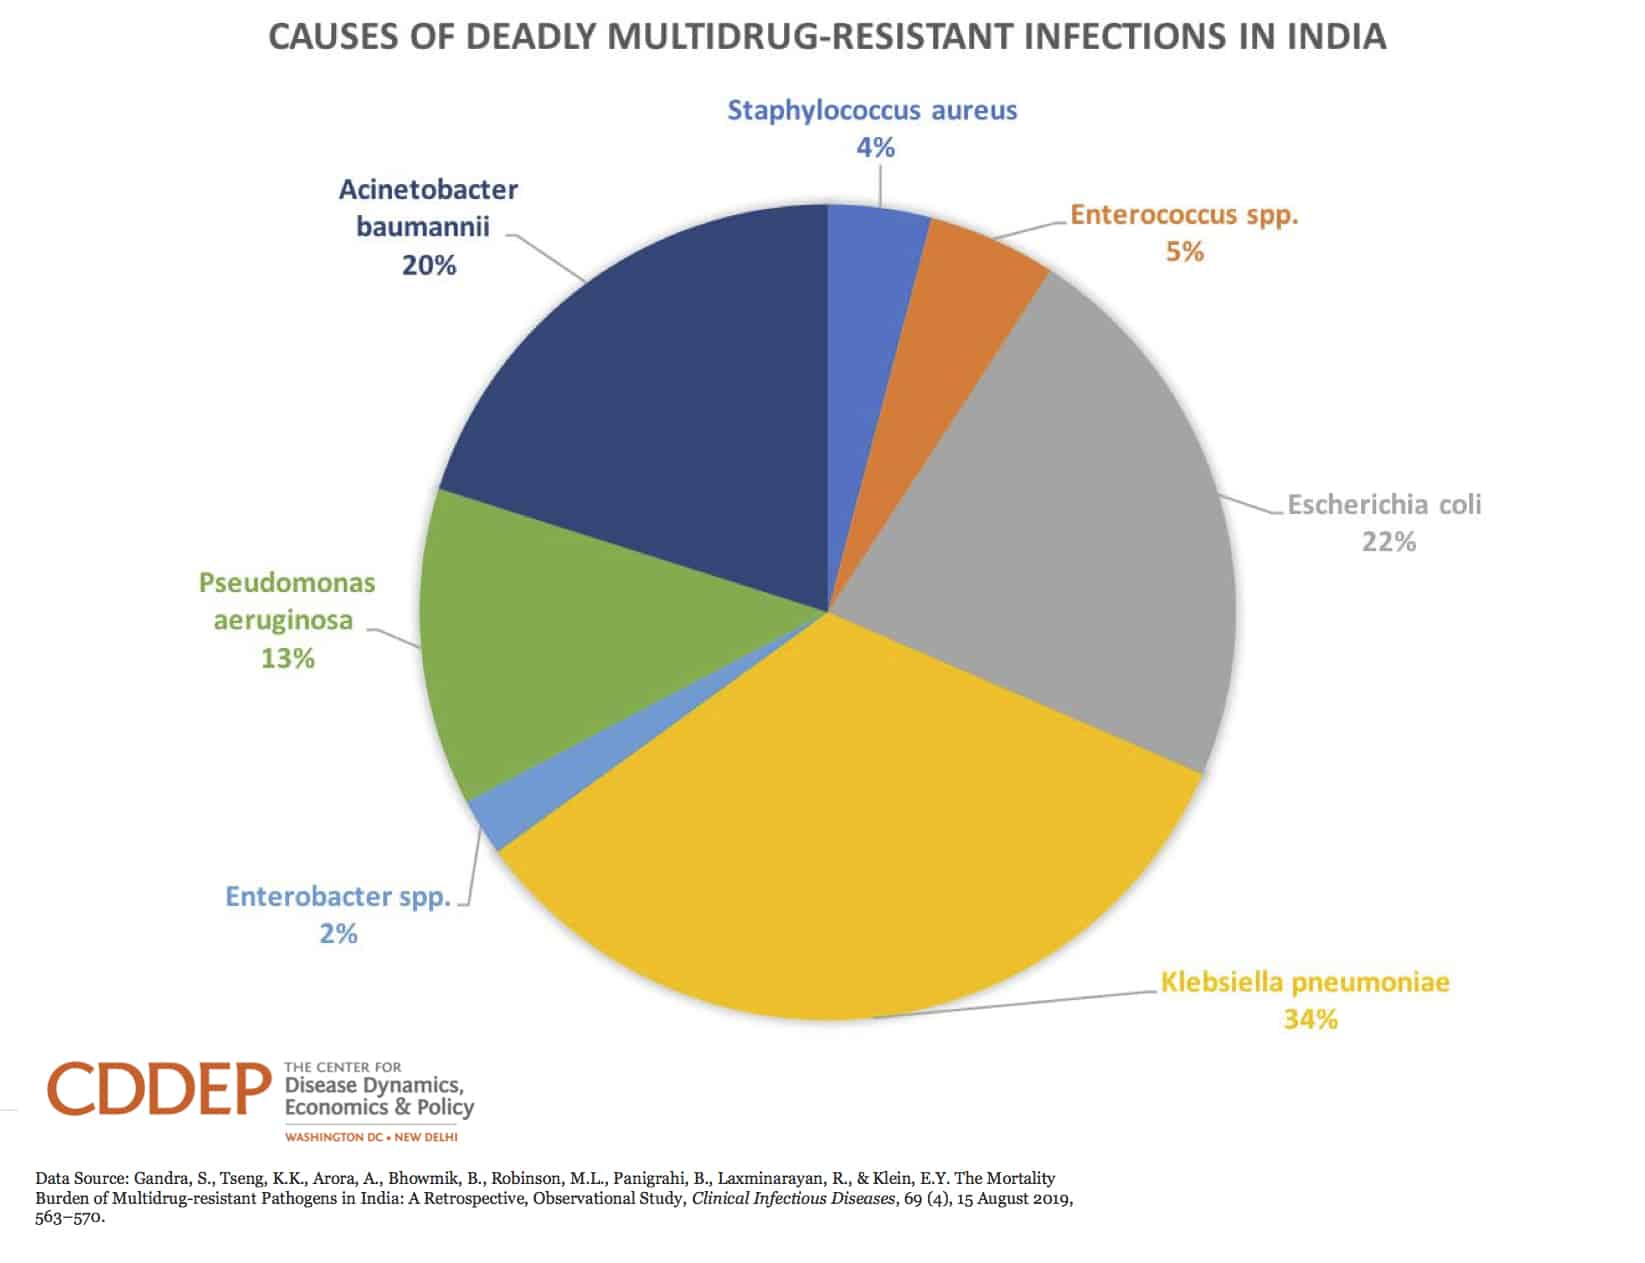 Causes of Deadly Multidrug-Resistant Infections in India